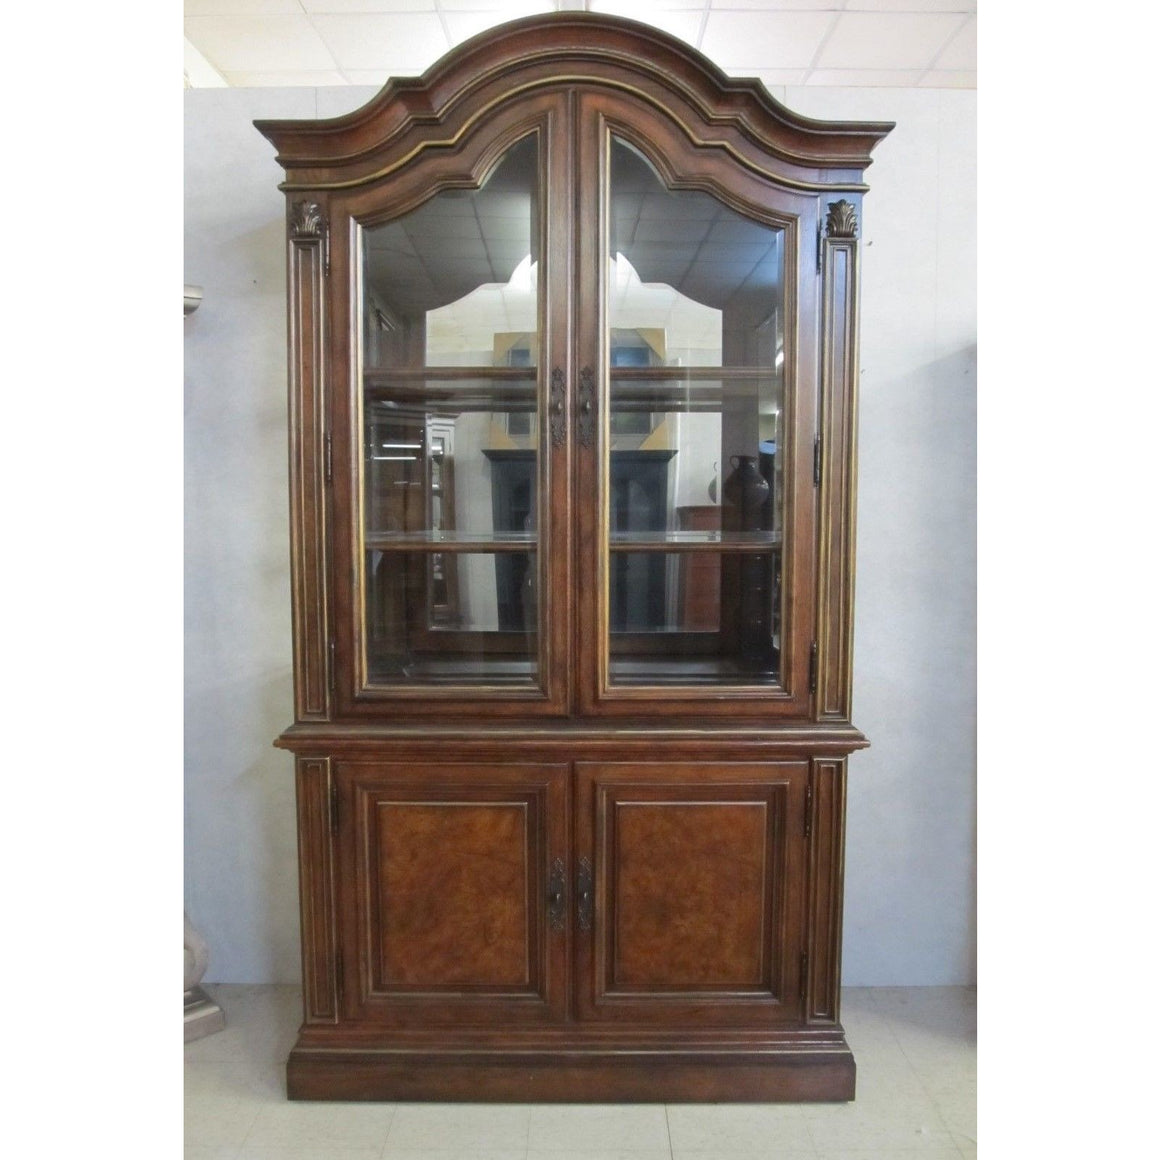 China / Display Cabinets & Bookcases - Sherlock's Home Furnishings